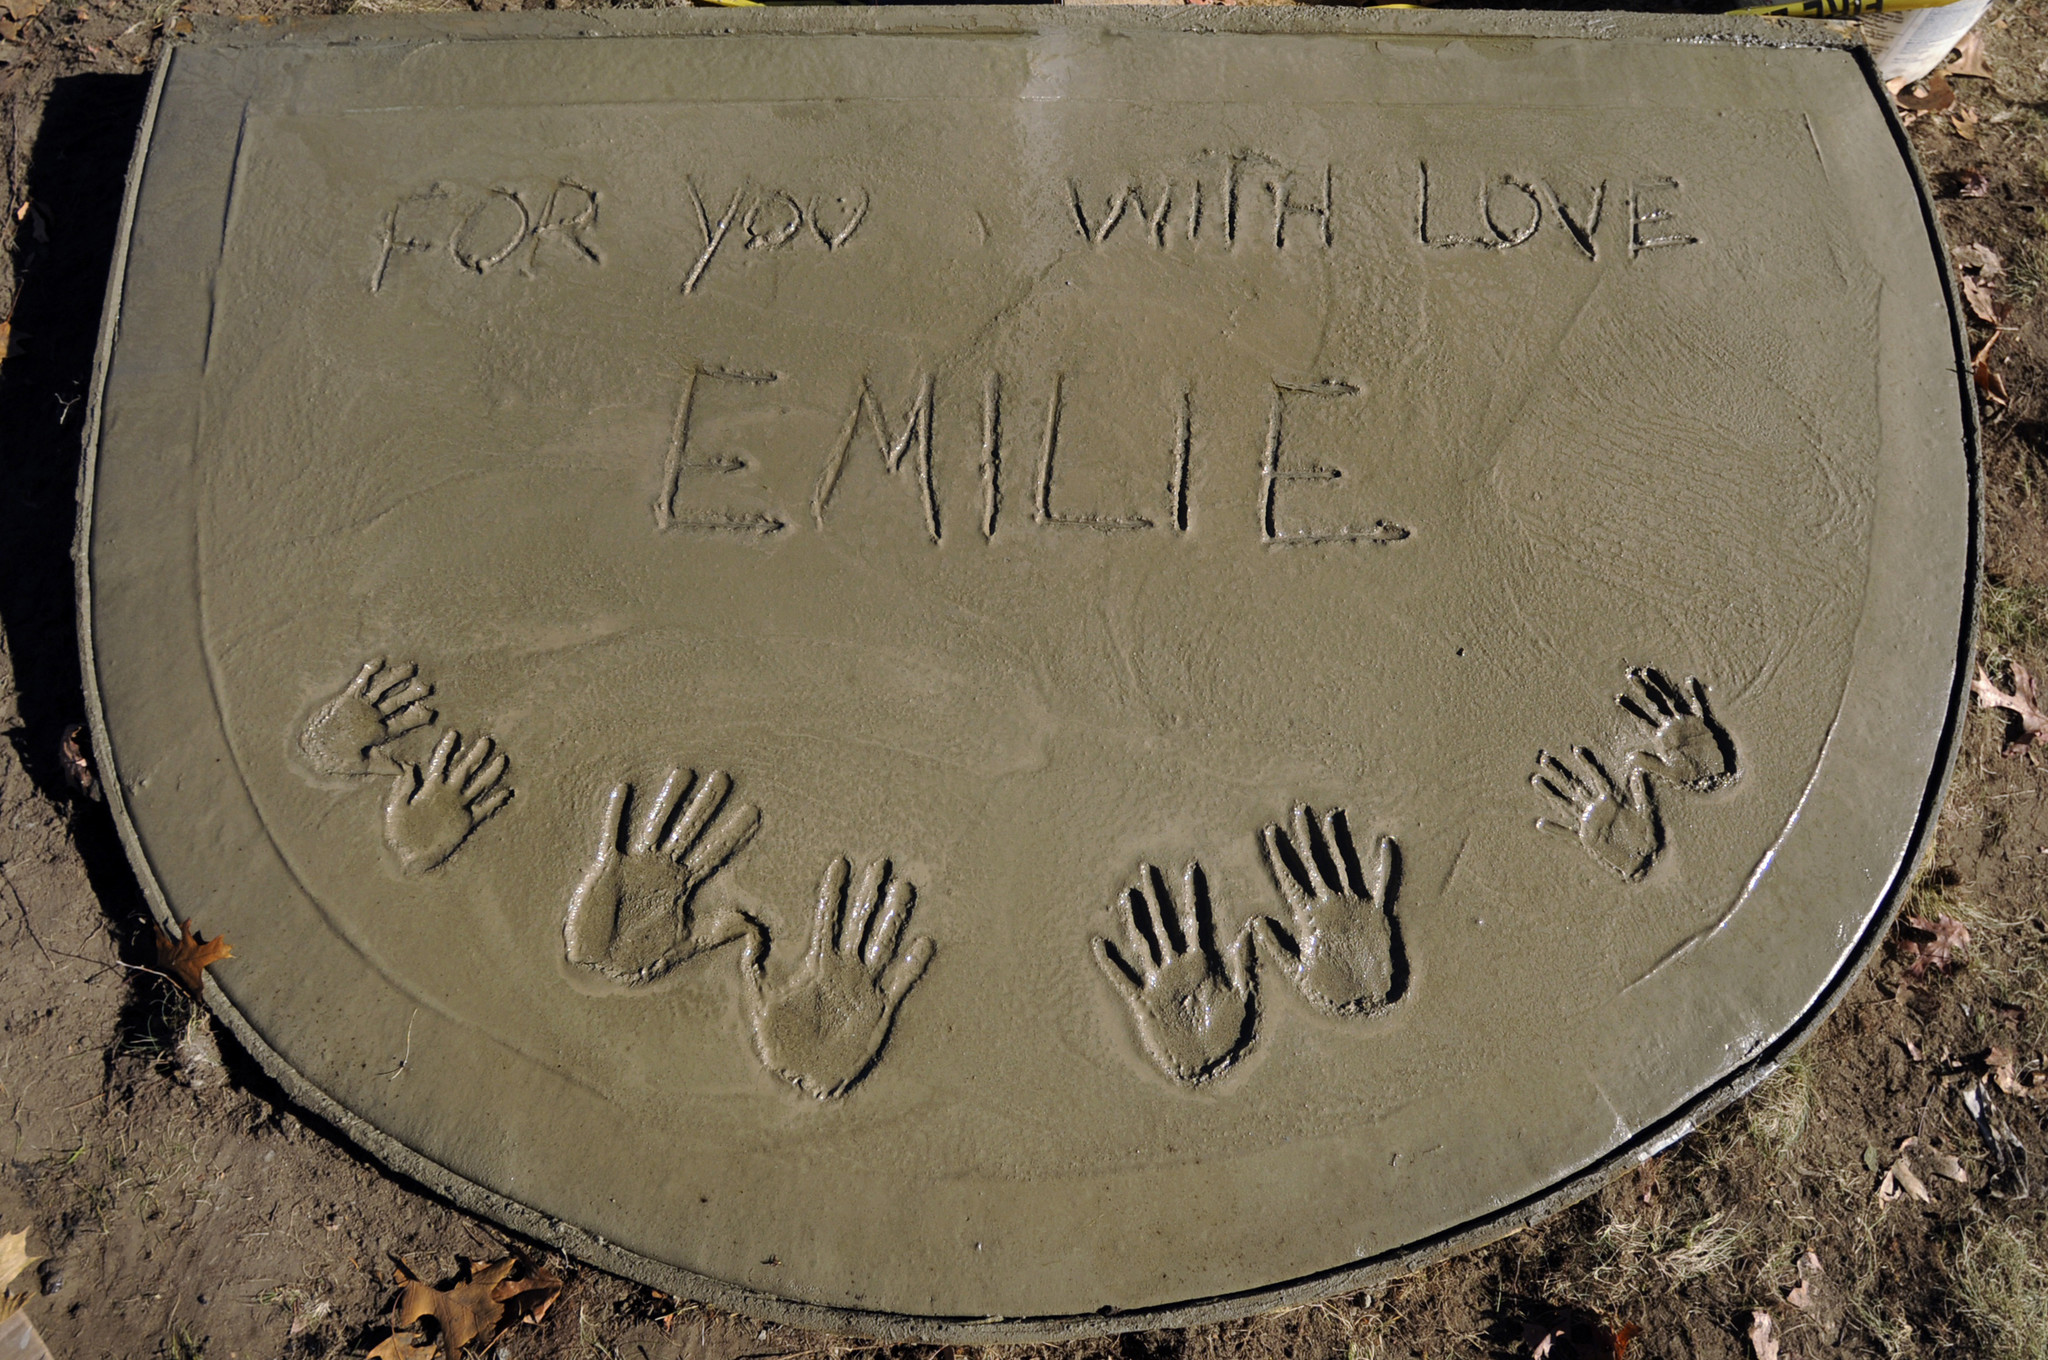 Freshly poured cement imprinted with the handprints of the Parker family and a tribute to Emilie Parker marks the entrance to Emilie